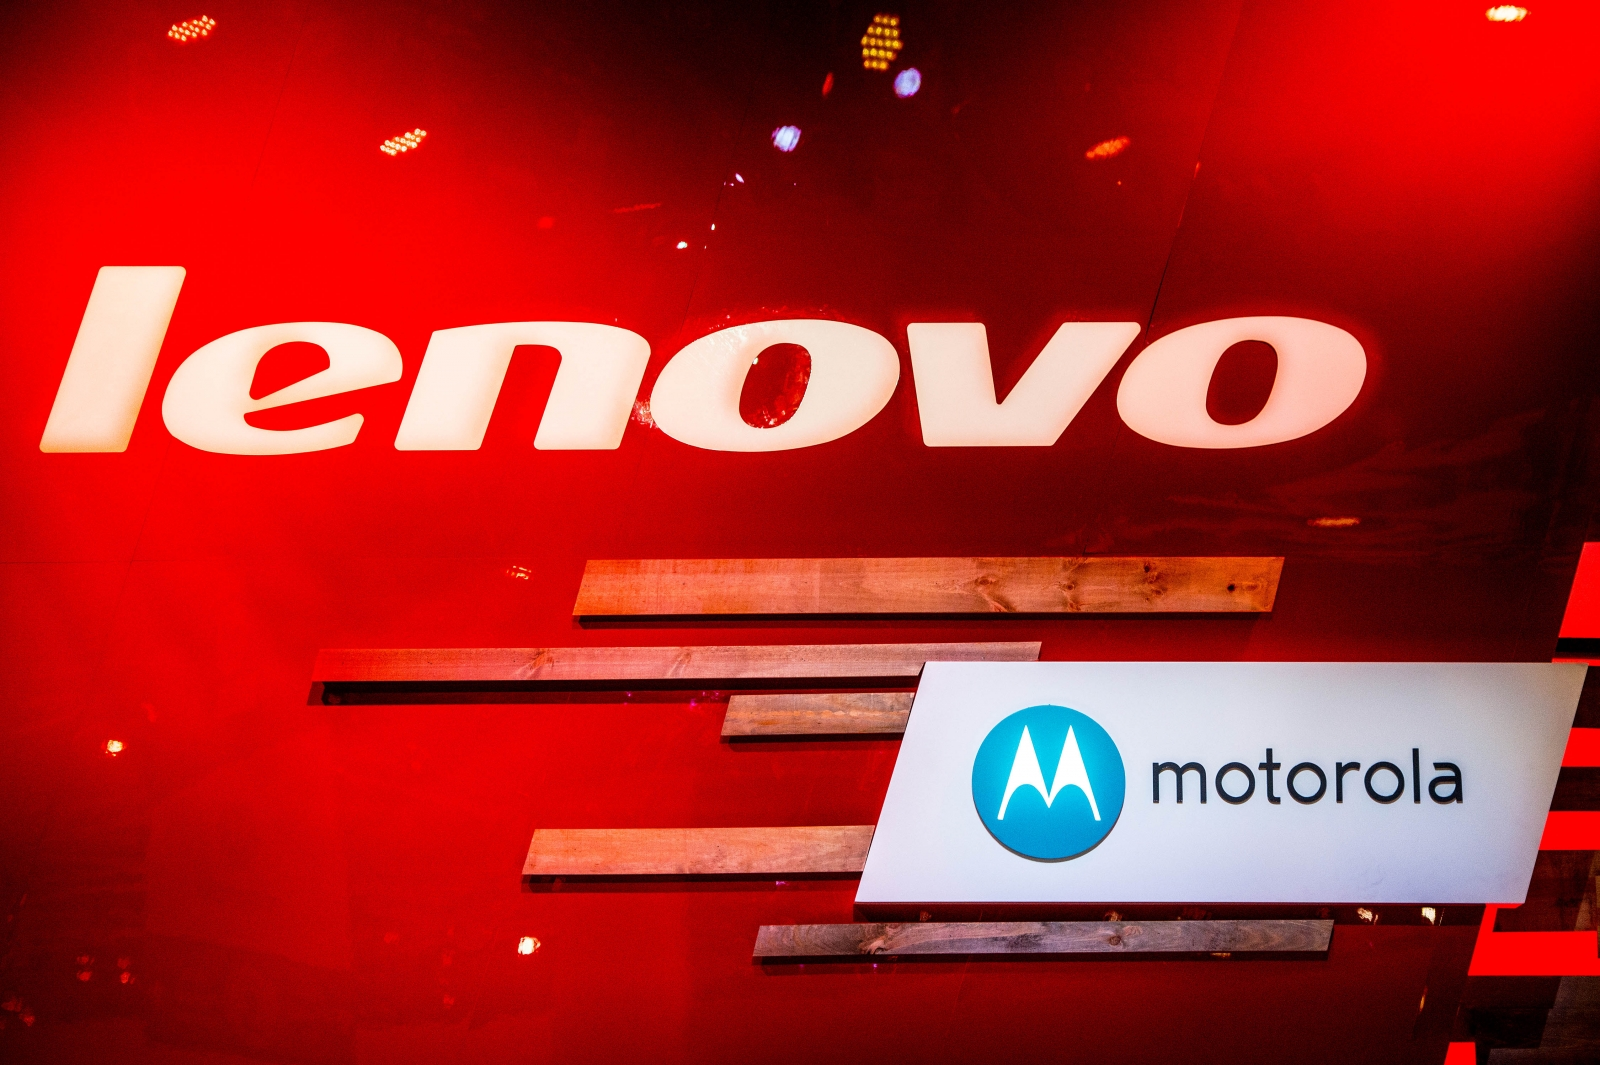 Lenovo might use Moto brand for smartphones